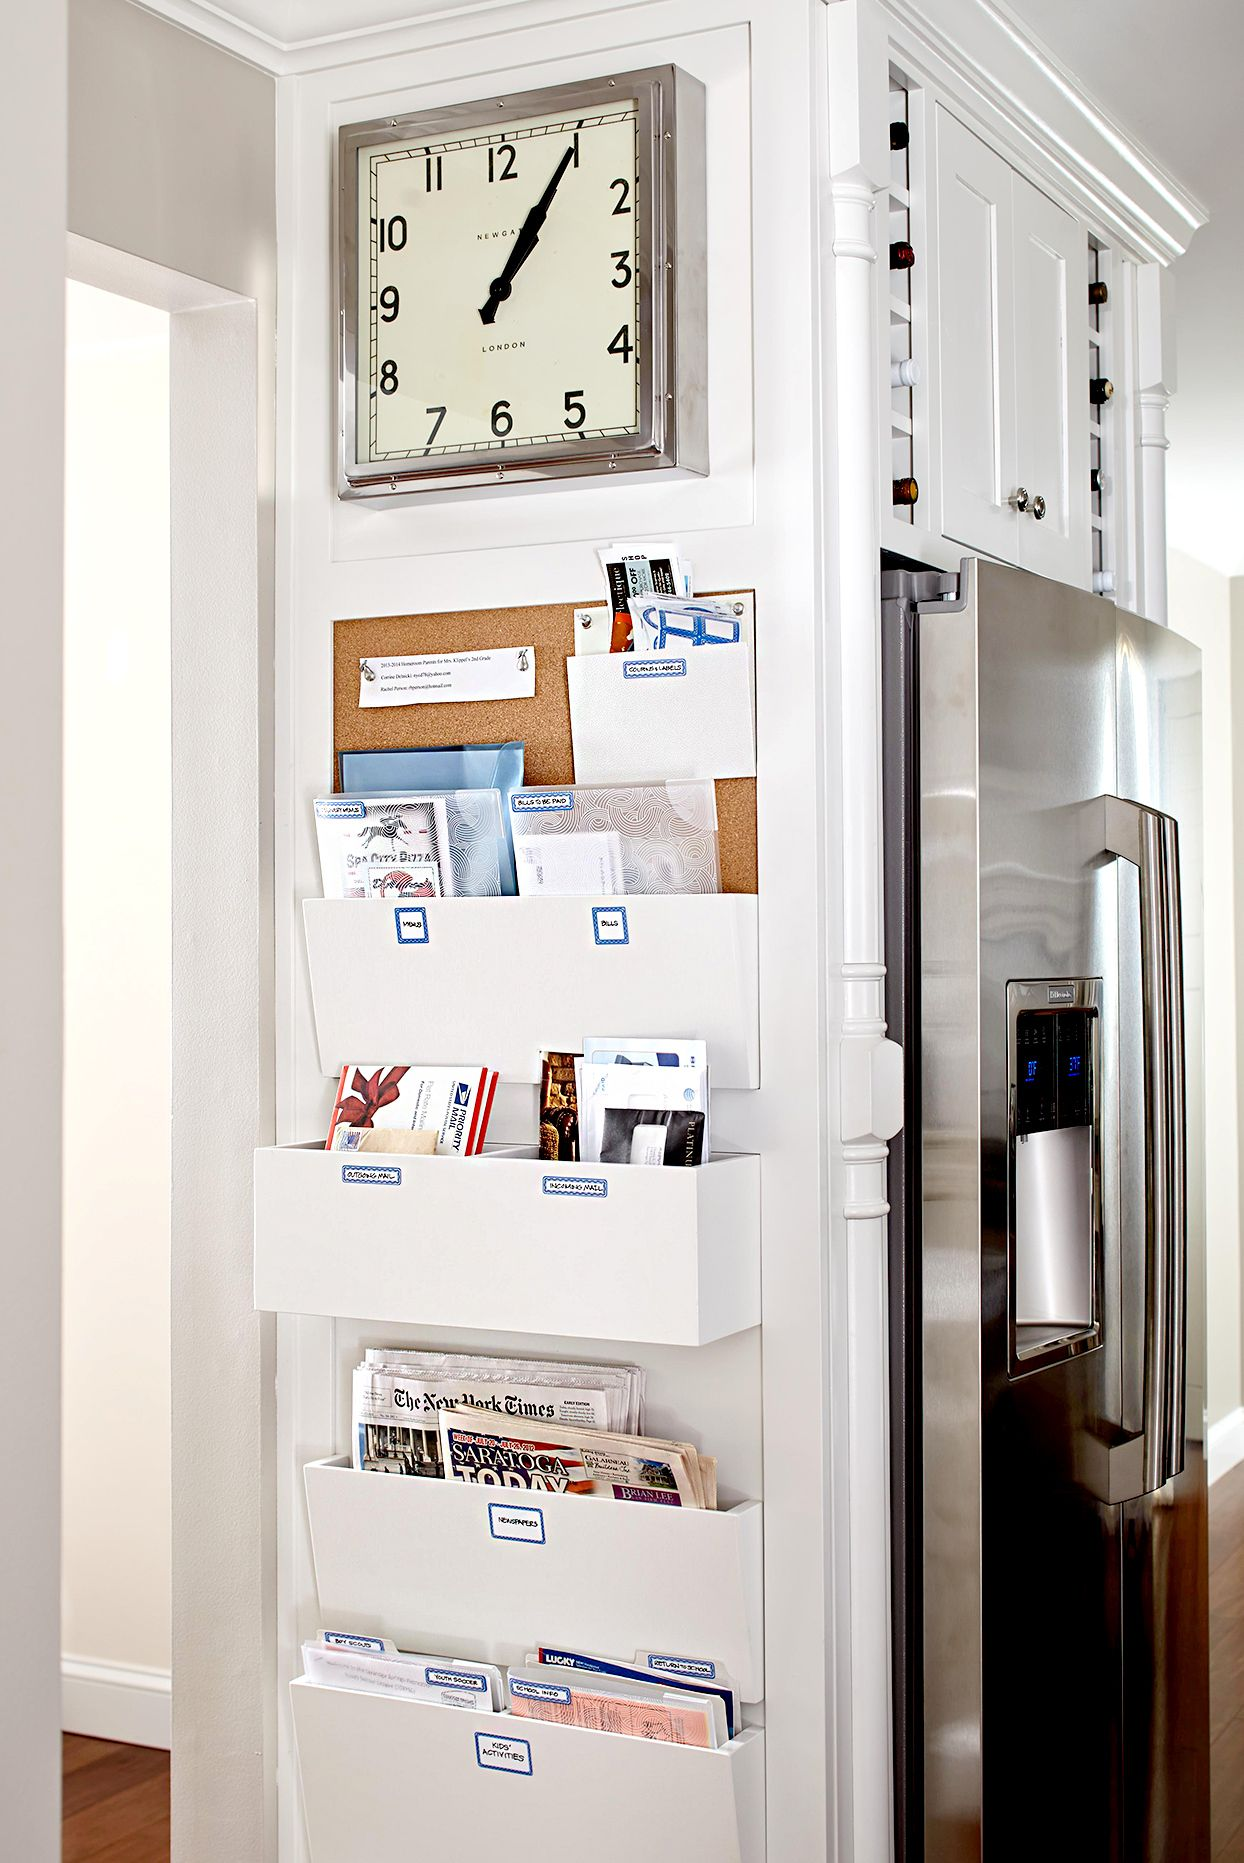 6 Creative Command Center Ideas To Organize Your Family In 2020 Home Command Center Easy Closet Organization Diy Storage Cabinets